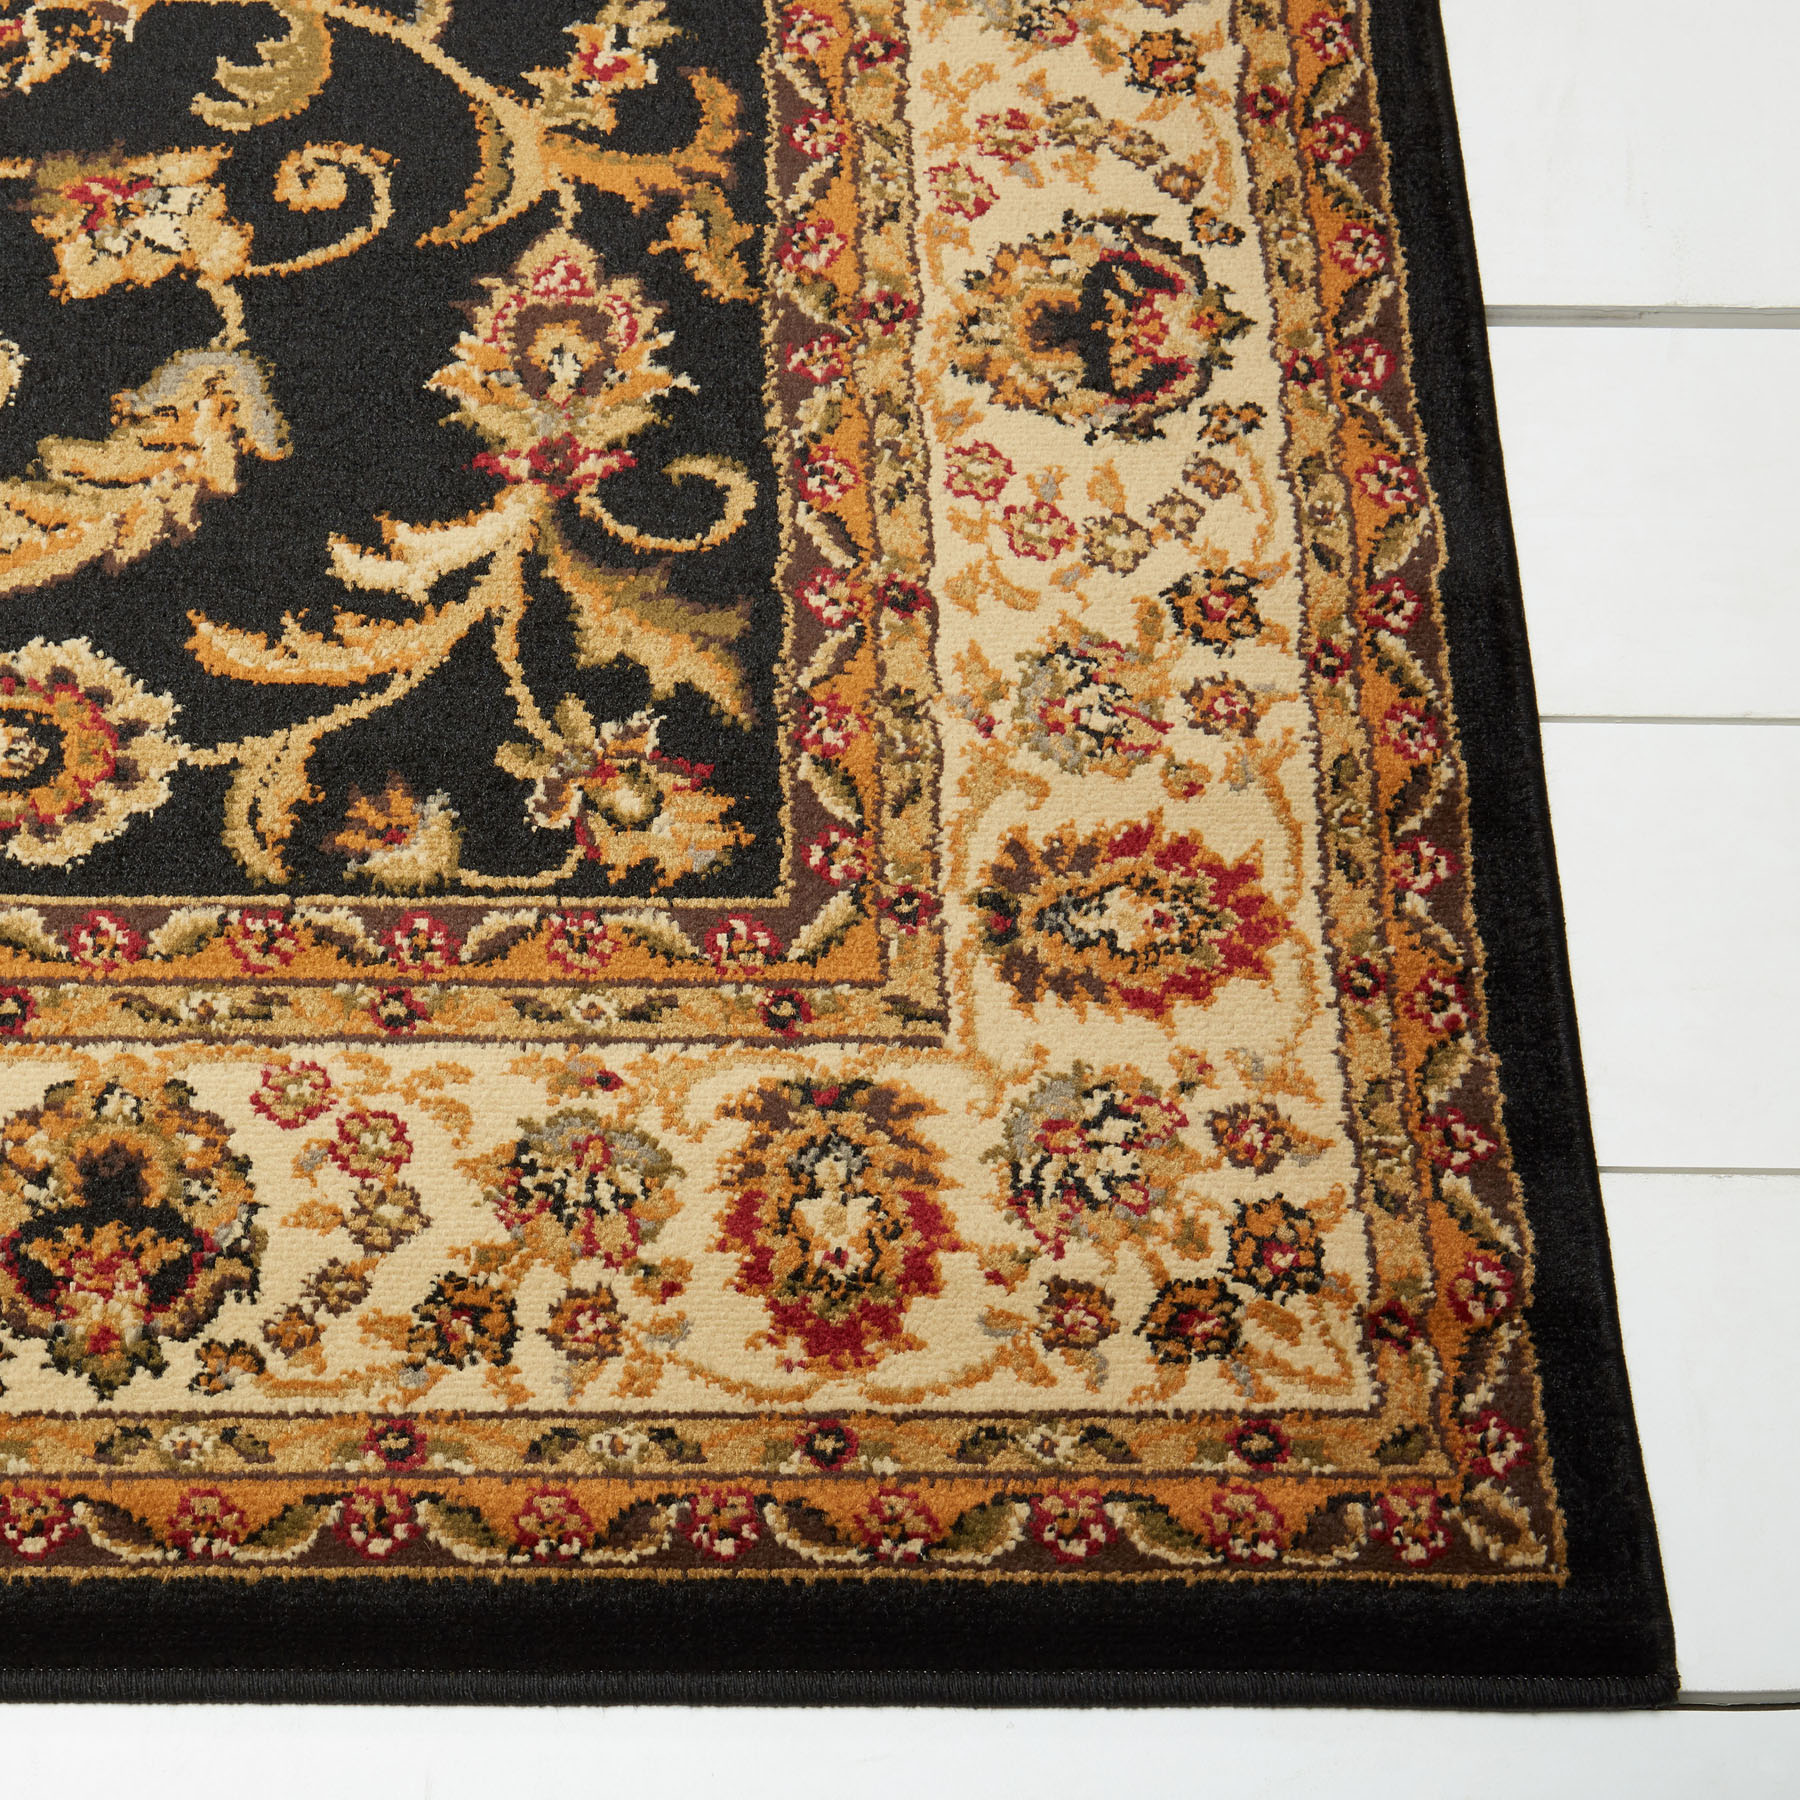 Persien Black Cream Area Rug 2x7 Runner Oriental 08